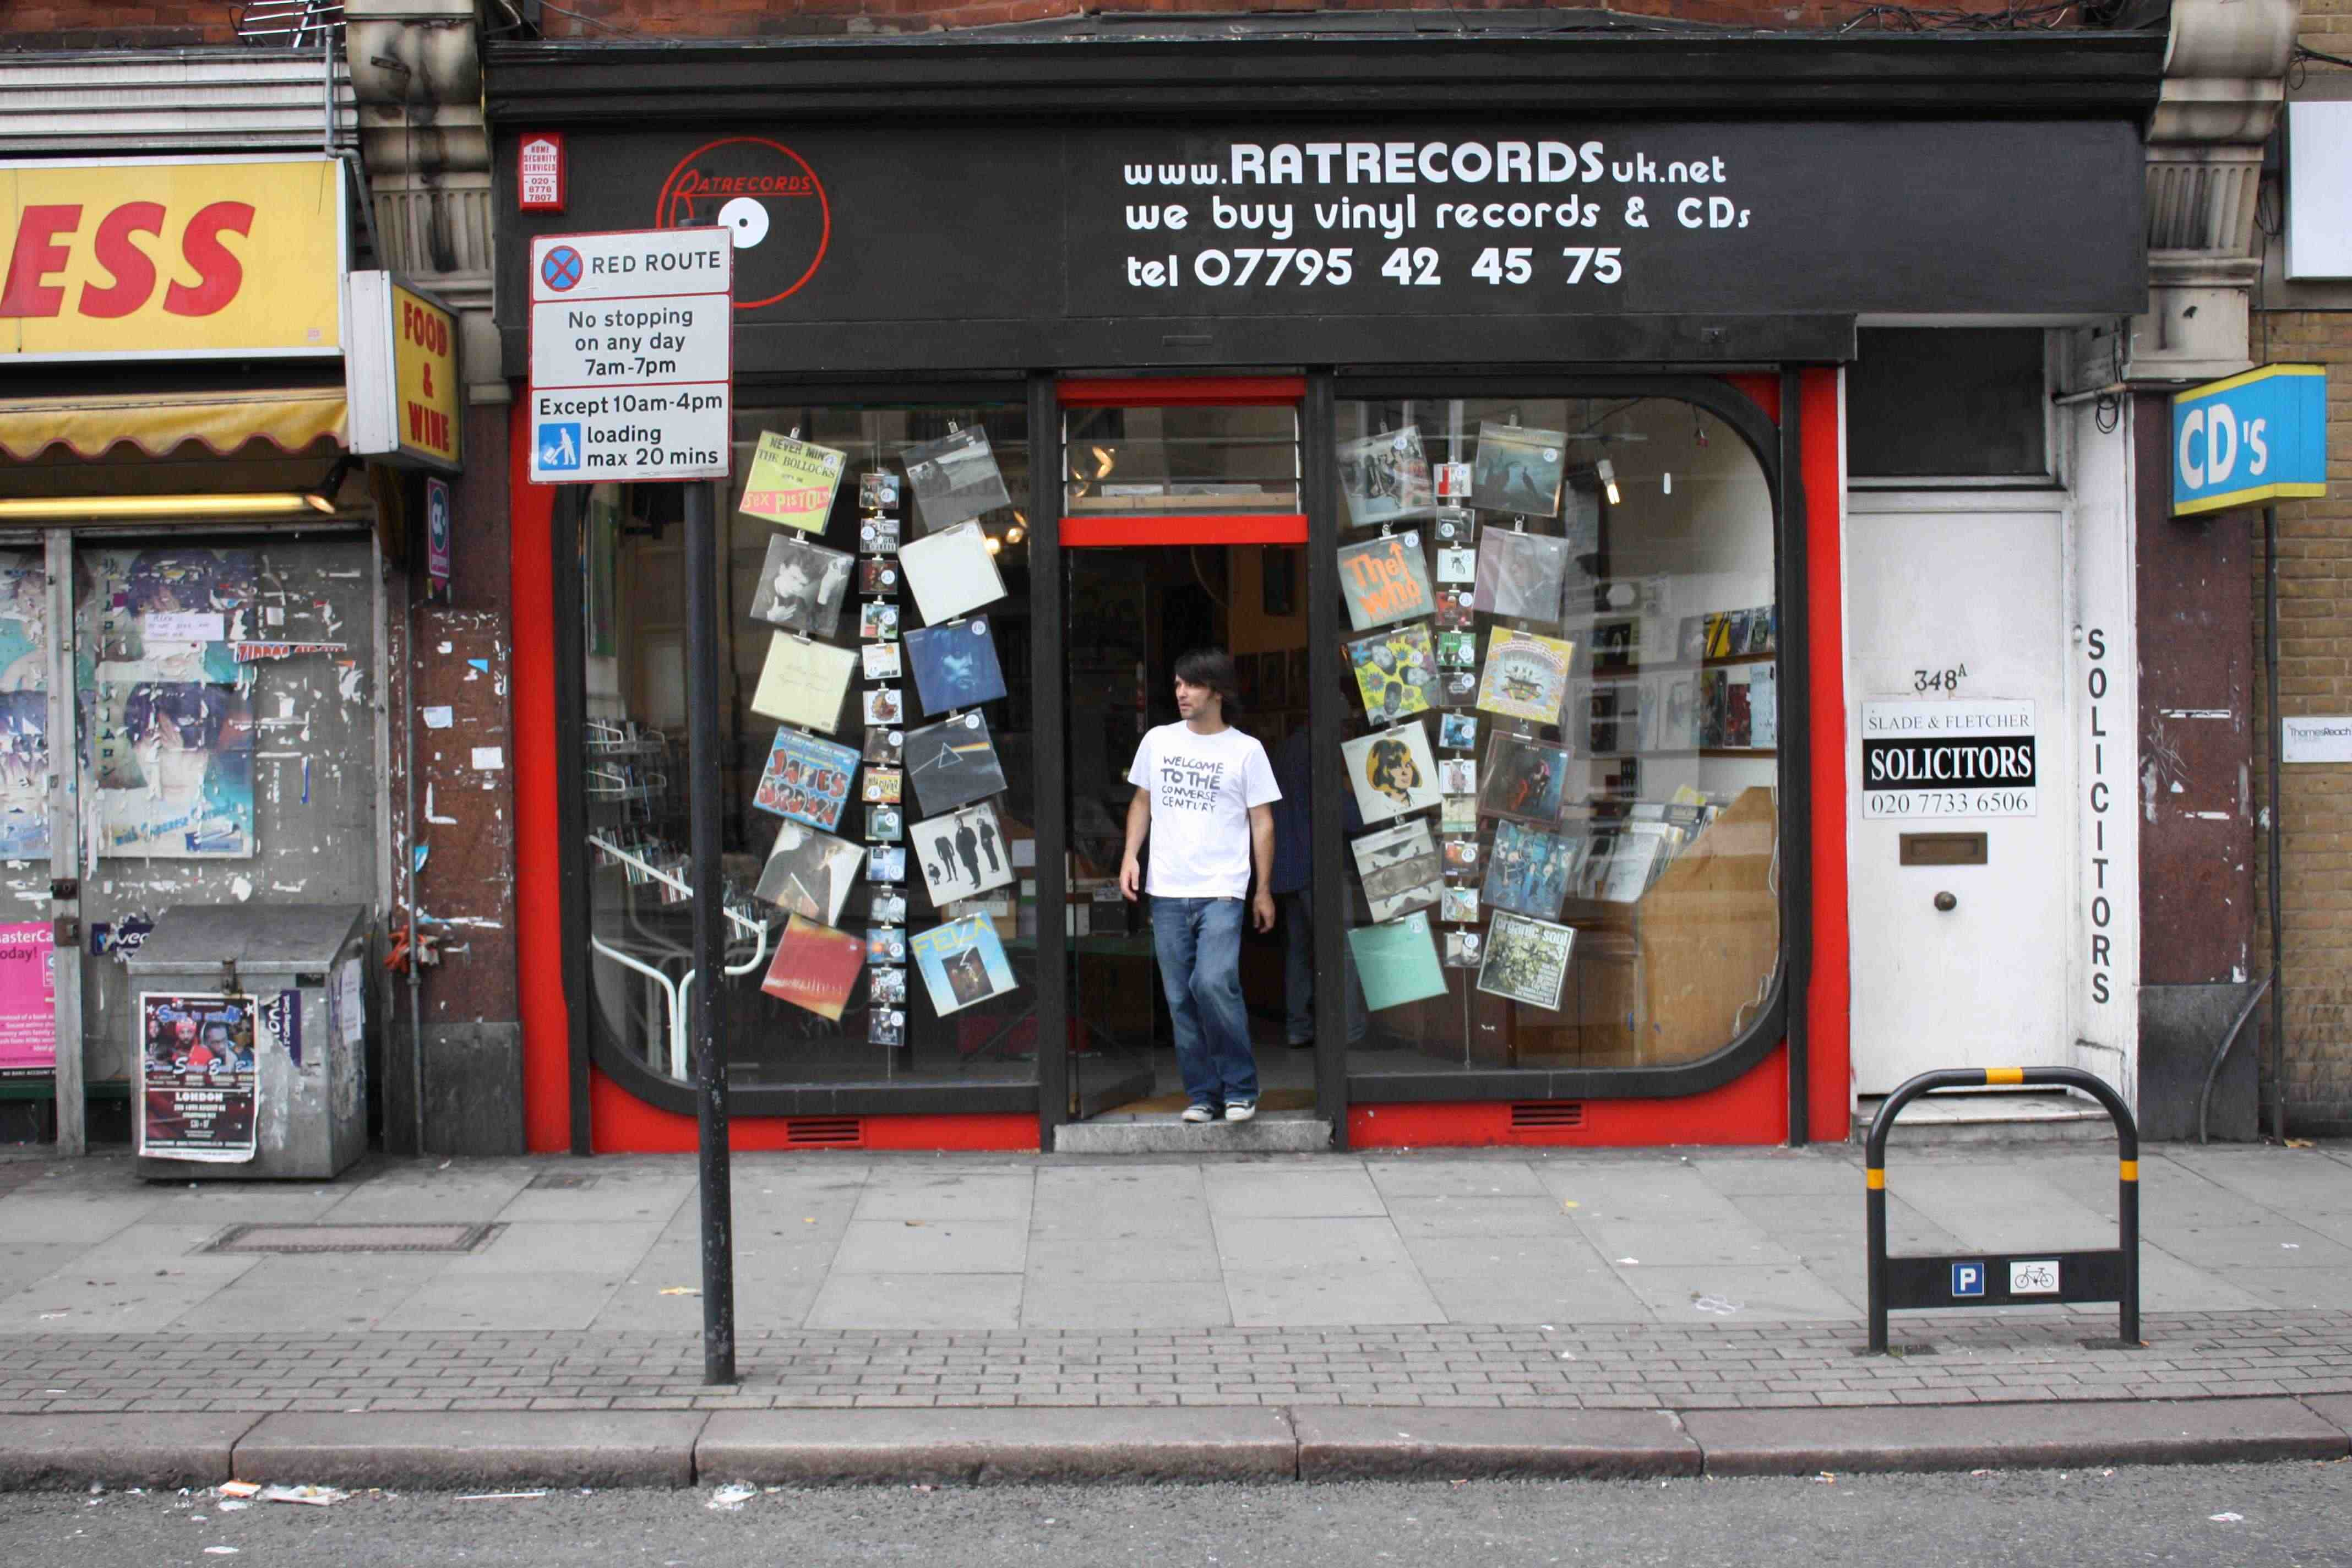 Rat Records shopfront_WEB